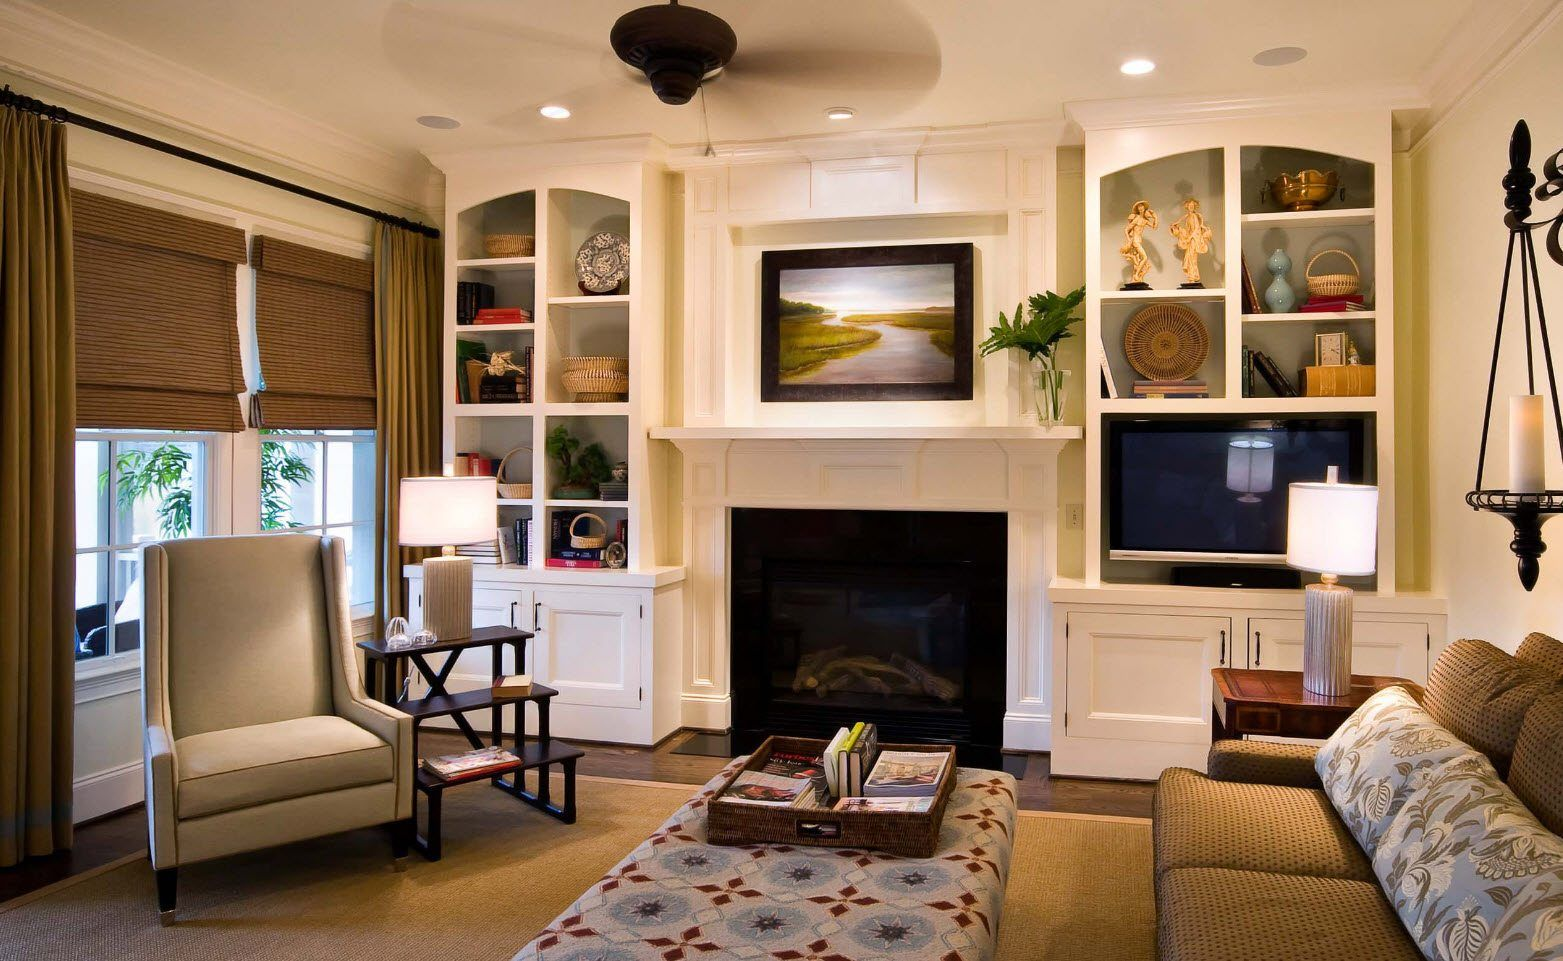 150 Square Feet Living Room Best Arrangement Ideas. White wall decoration and many shelves